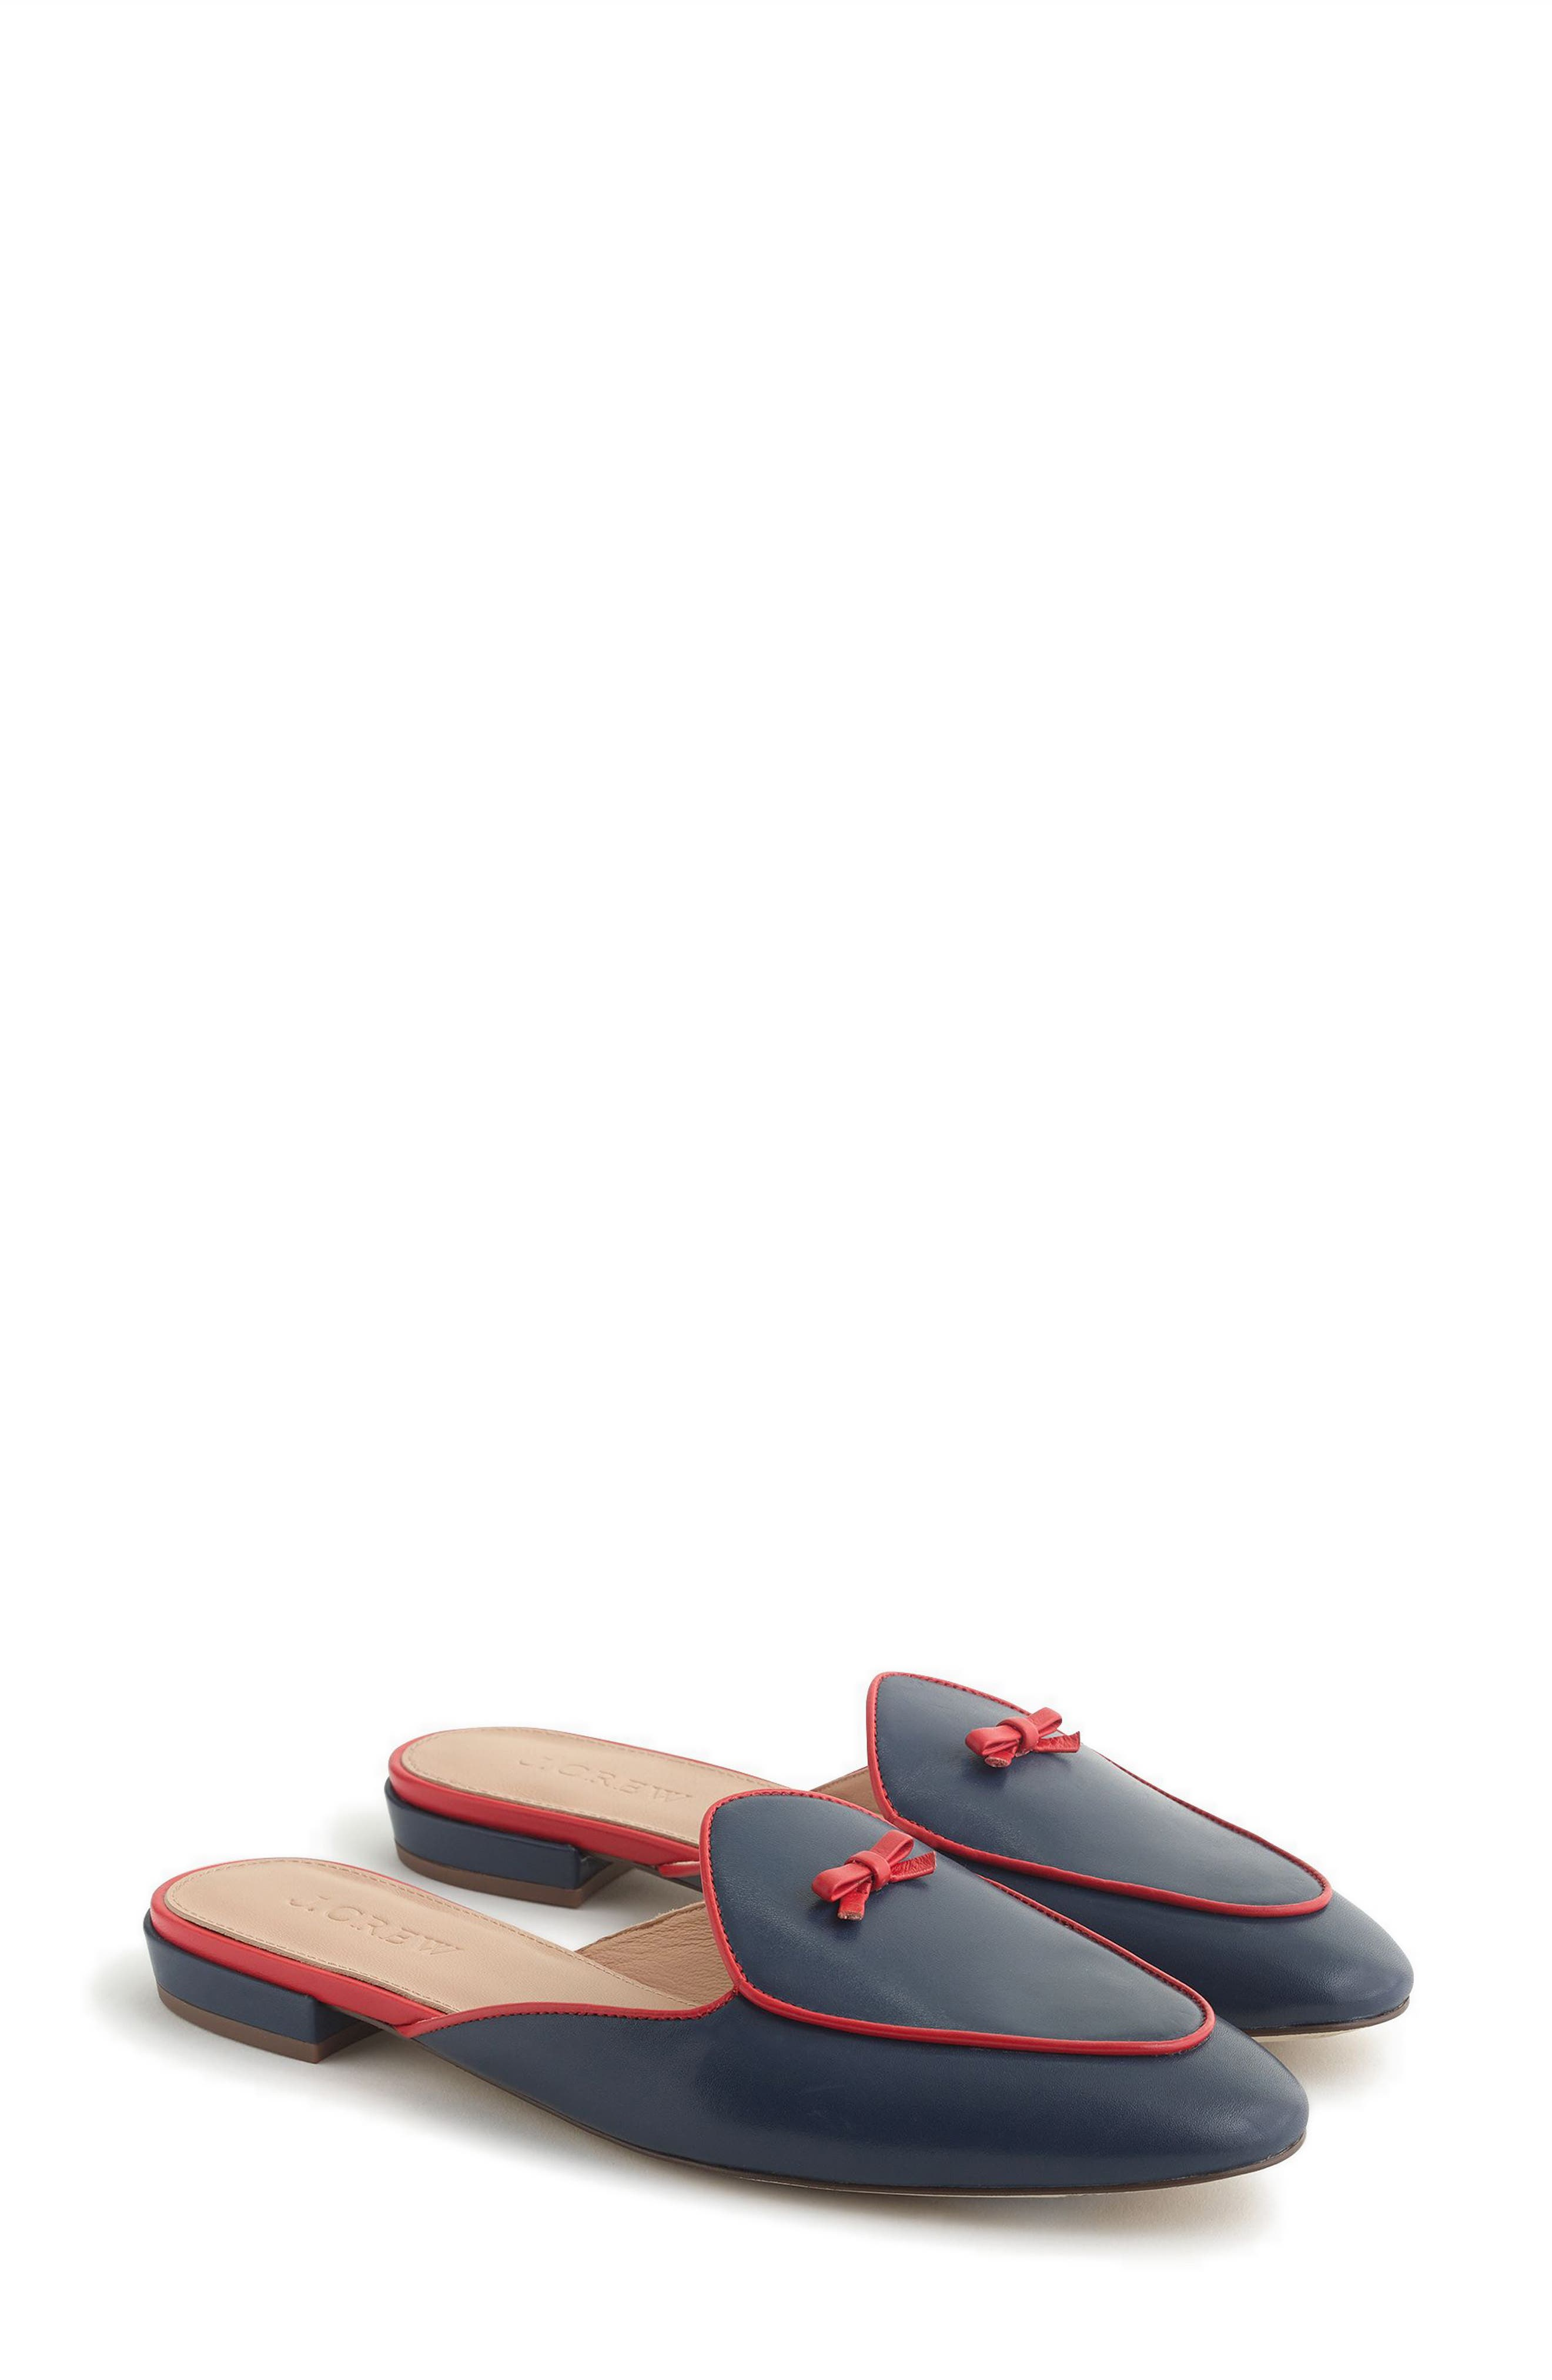 Loafer Mule,                             Main thumbnail 1, color,                             Bright Indigo Leather